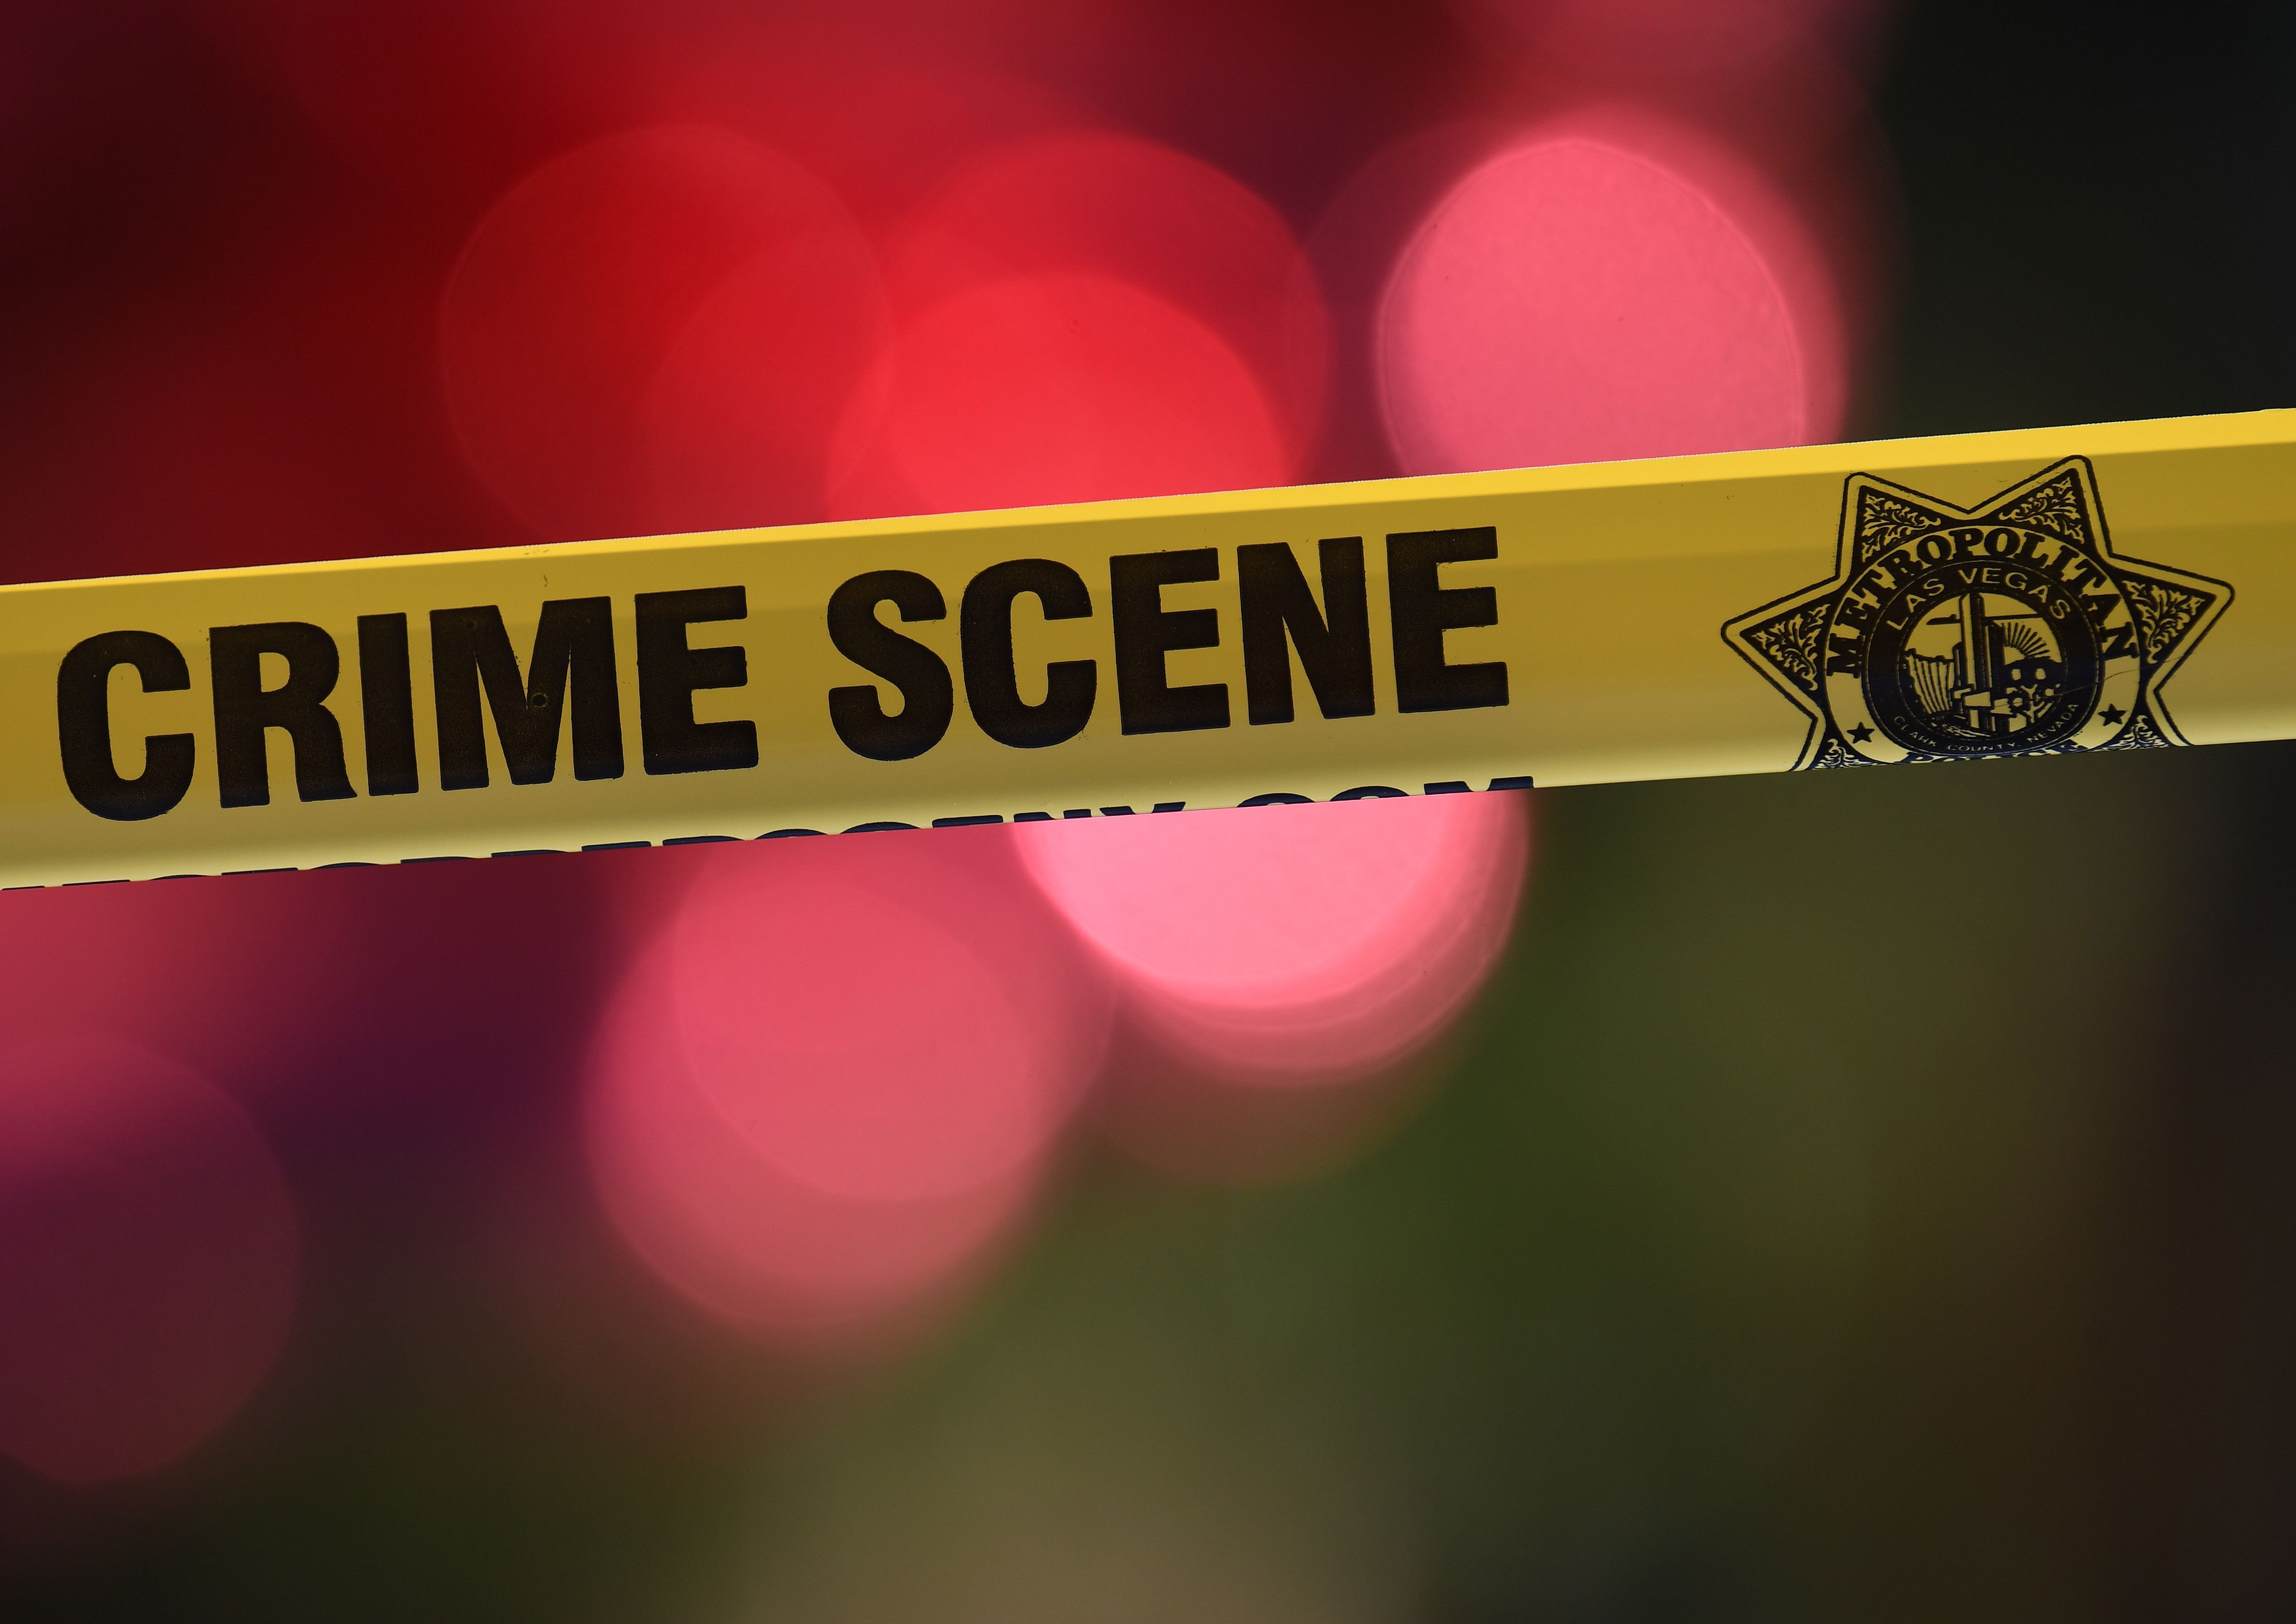 3 Dead, 4 Hospitalized After Drug Overdose in Pittsburgh: Reports